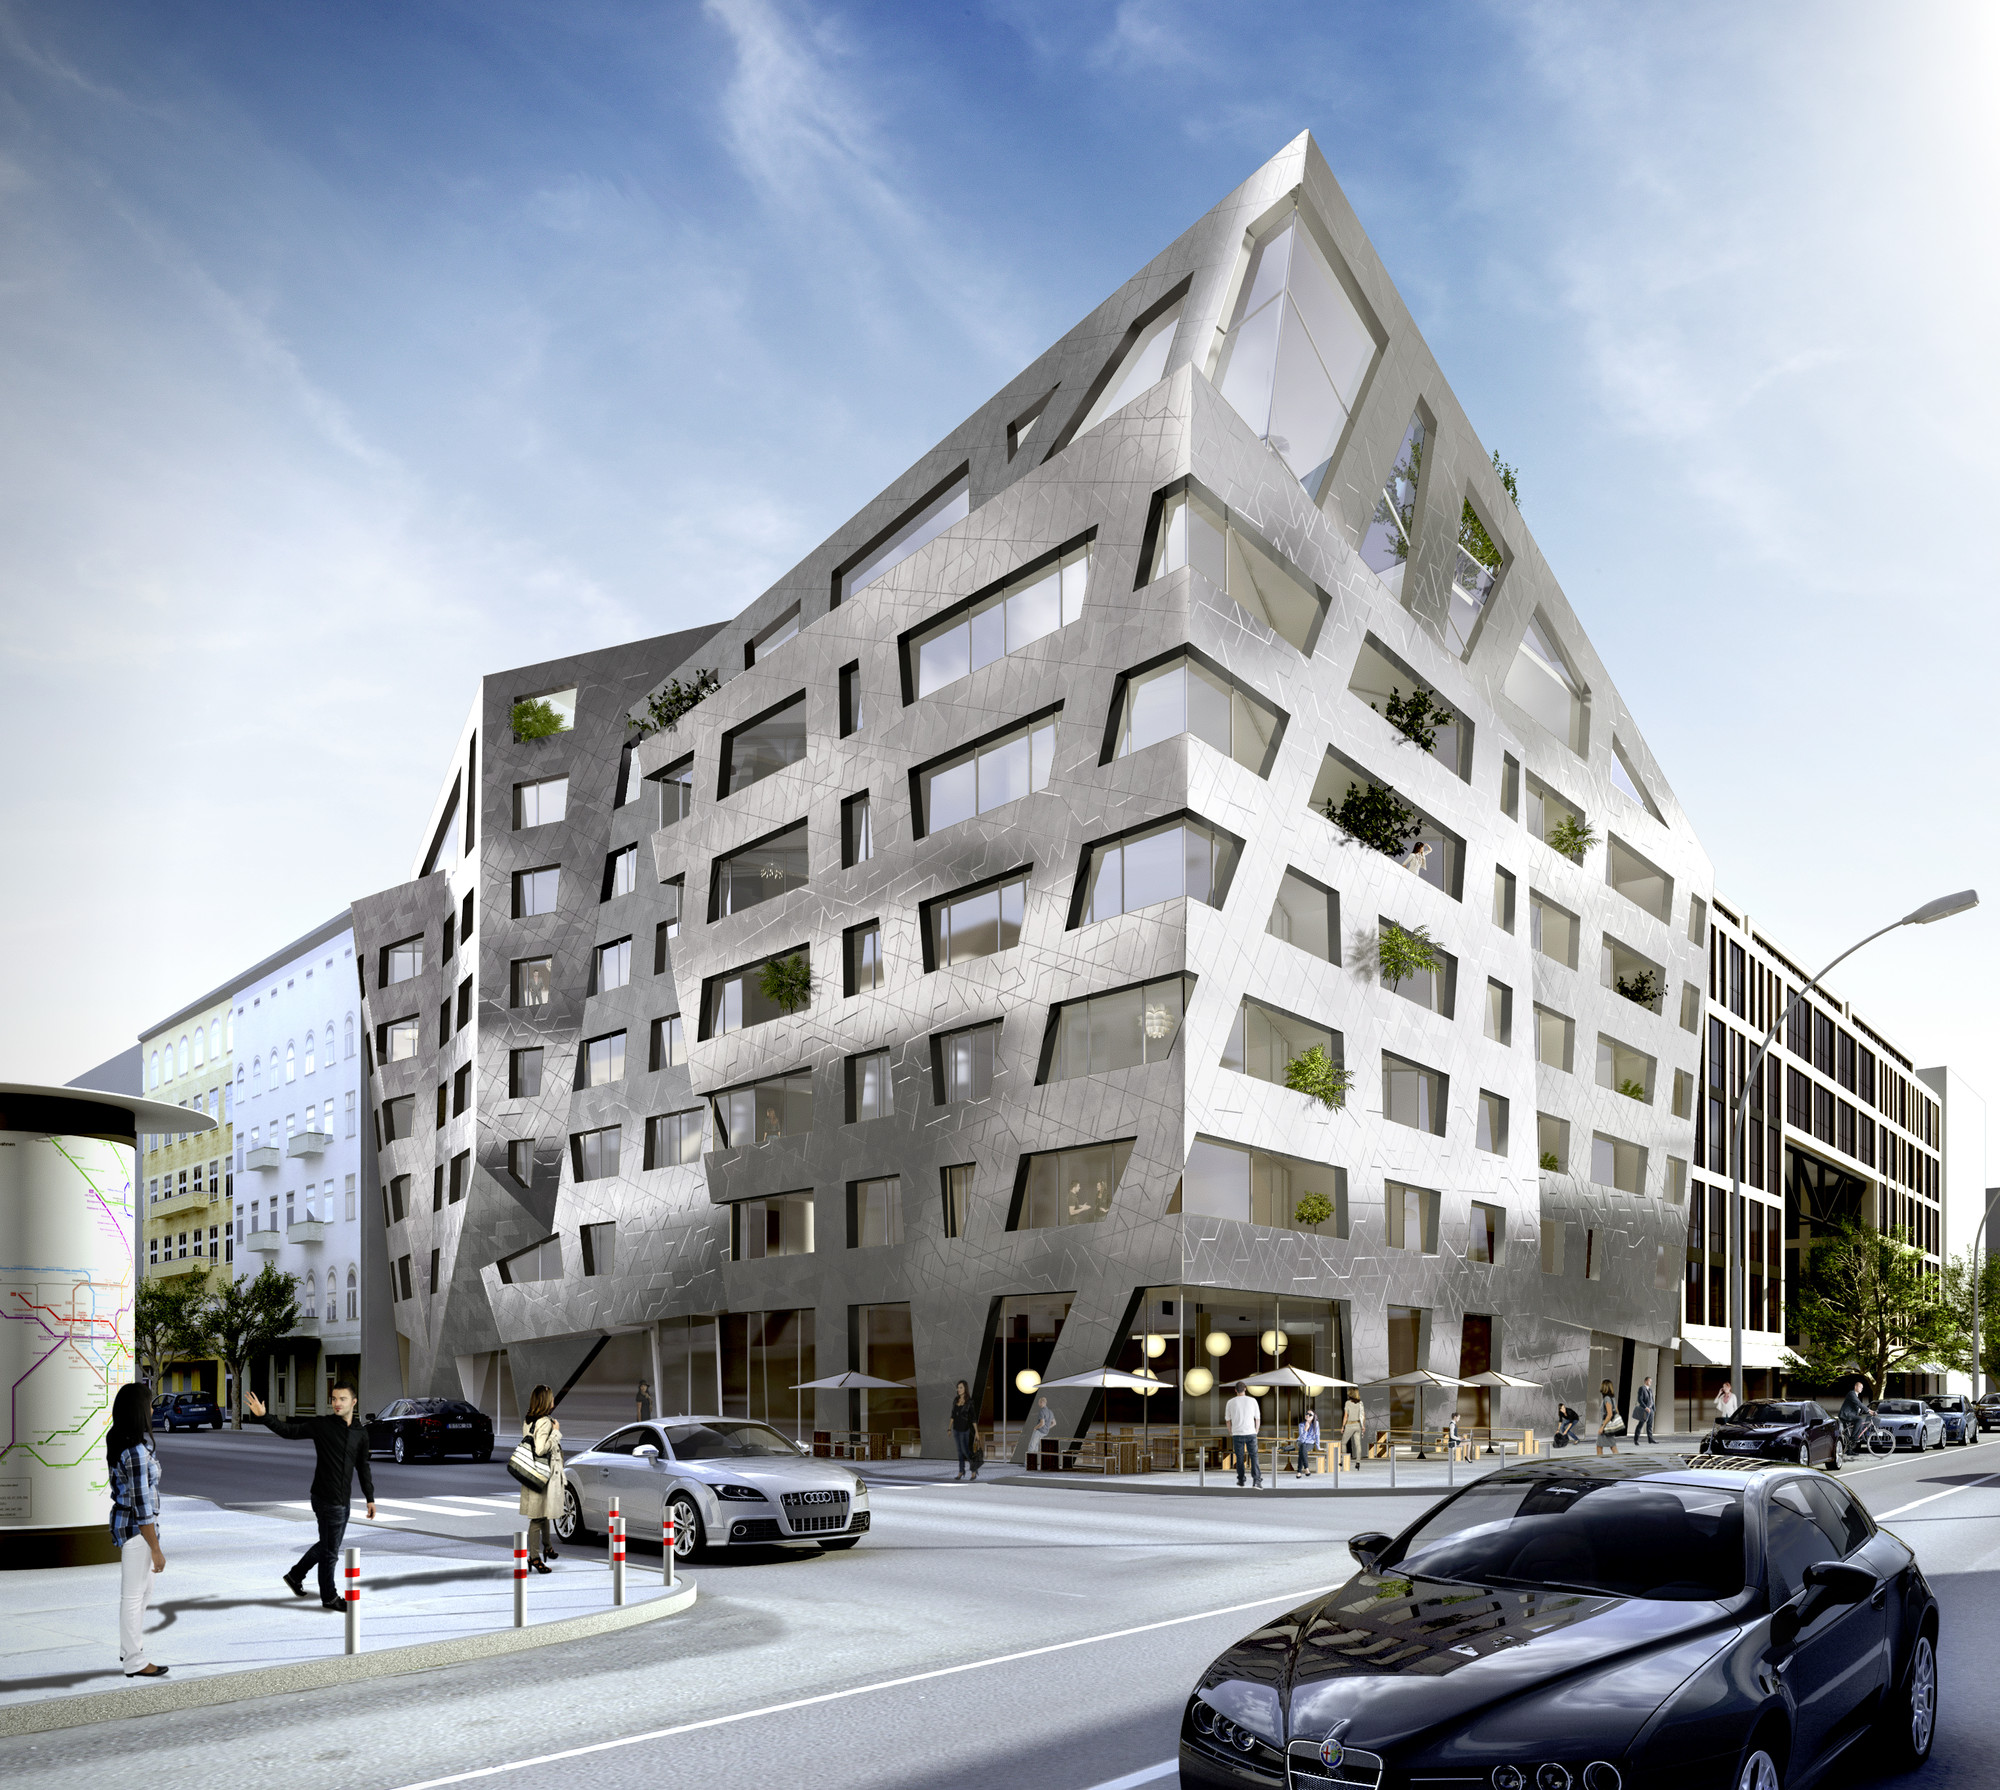 Daniel libeskind designs apartment building for berlin - Architecture of a building ...